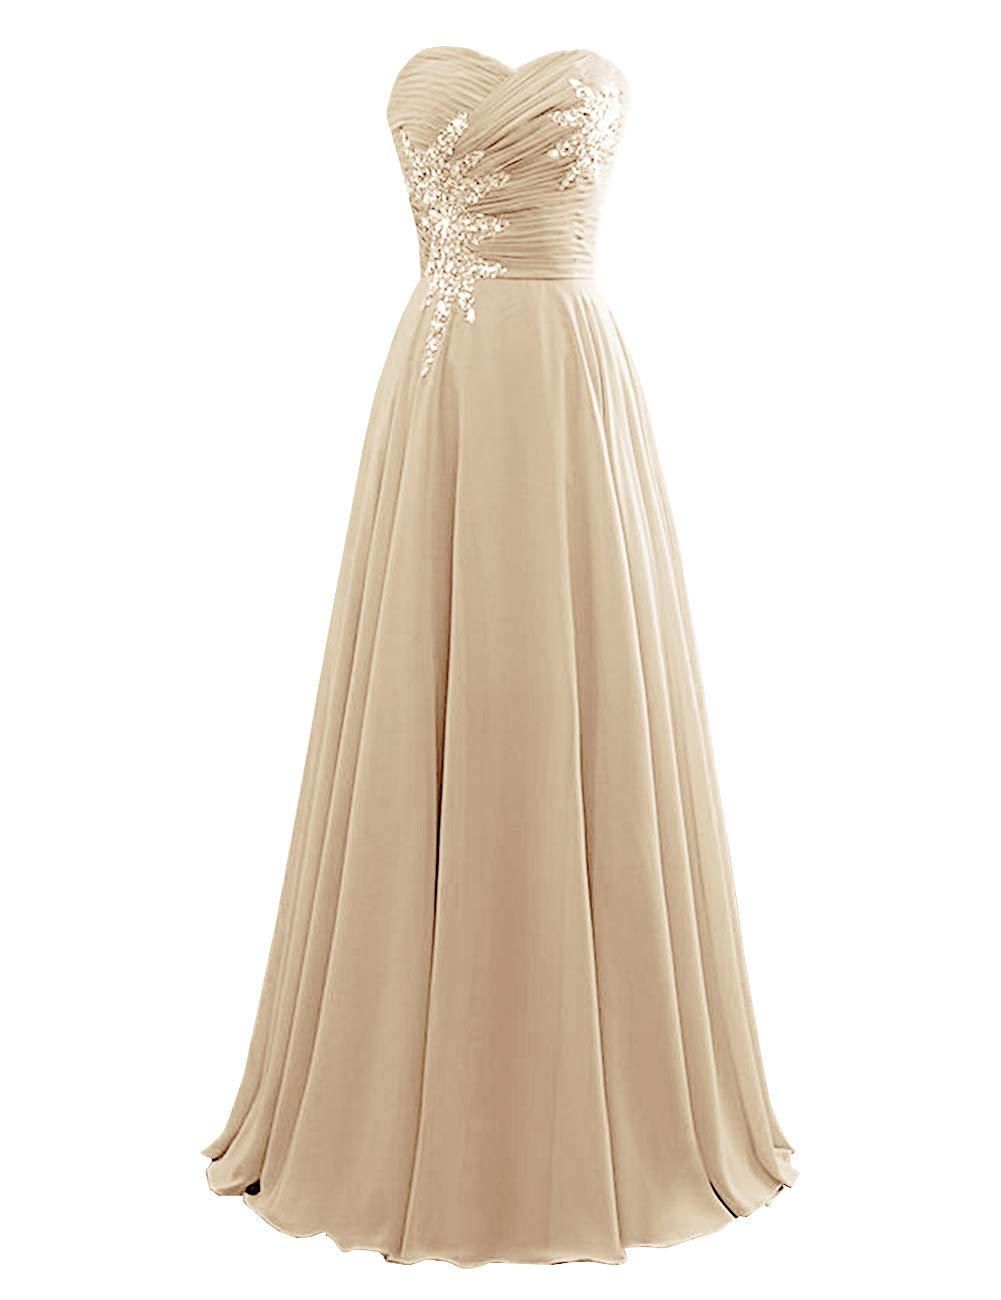 Women's Strapless Bridesmaid Dresses